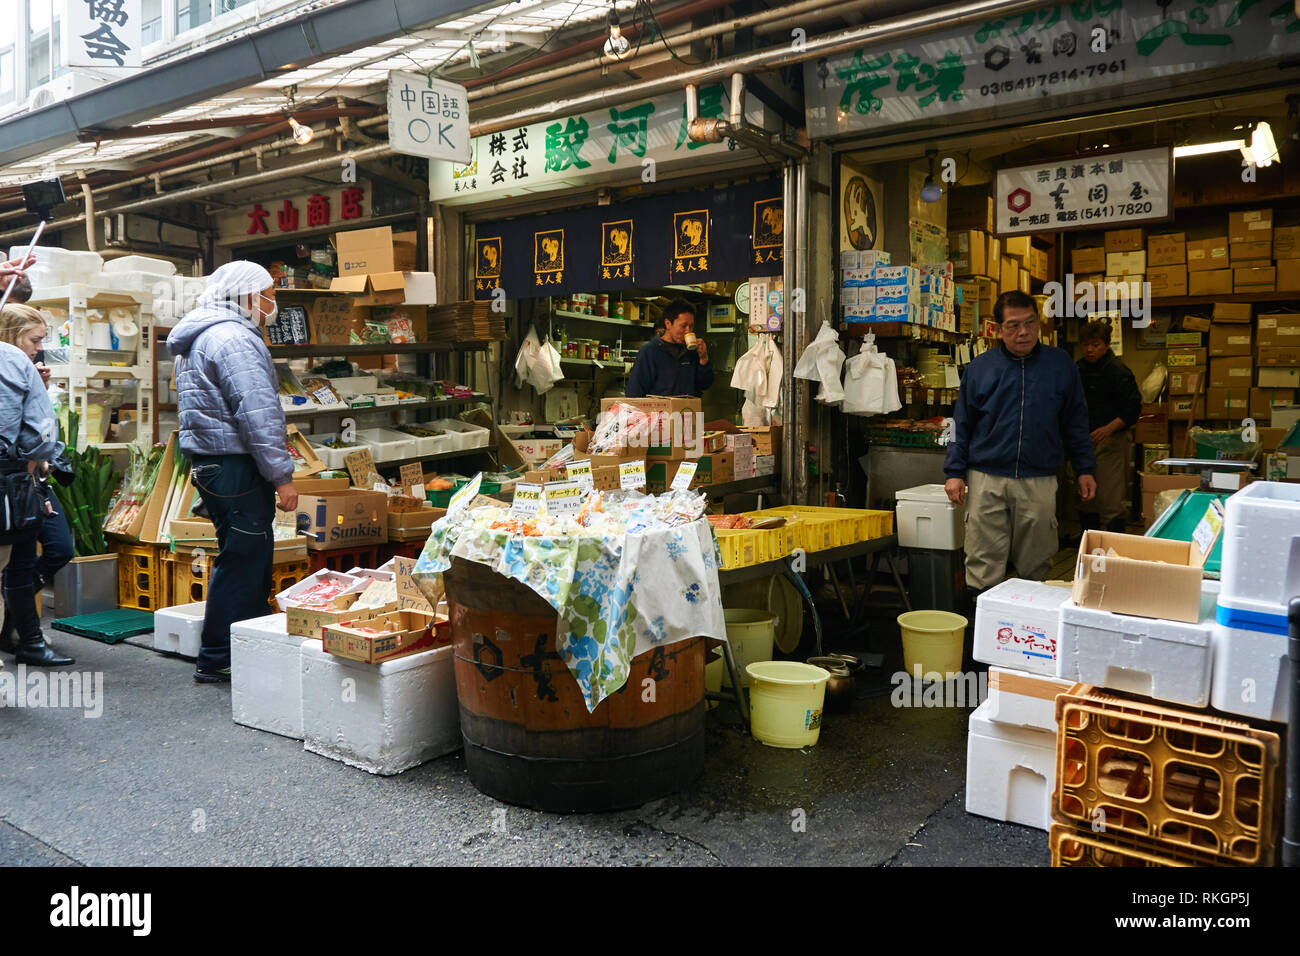 merchants-and-customers-stand-in-shops-tsukiji-fish-markets-outer-market-before-it-shut-down-and-moved-to-toyosu-in-tokyo-japan-RKGP5J.jpg